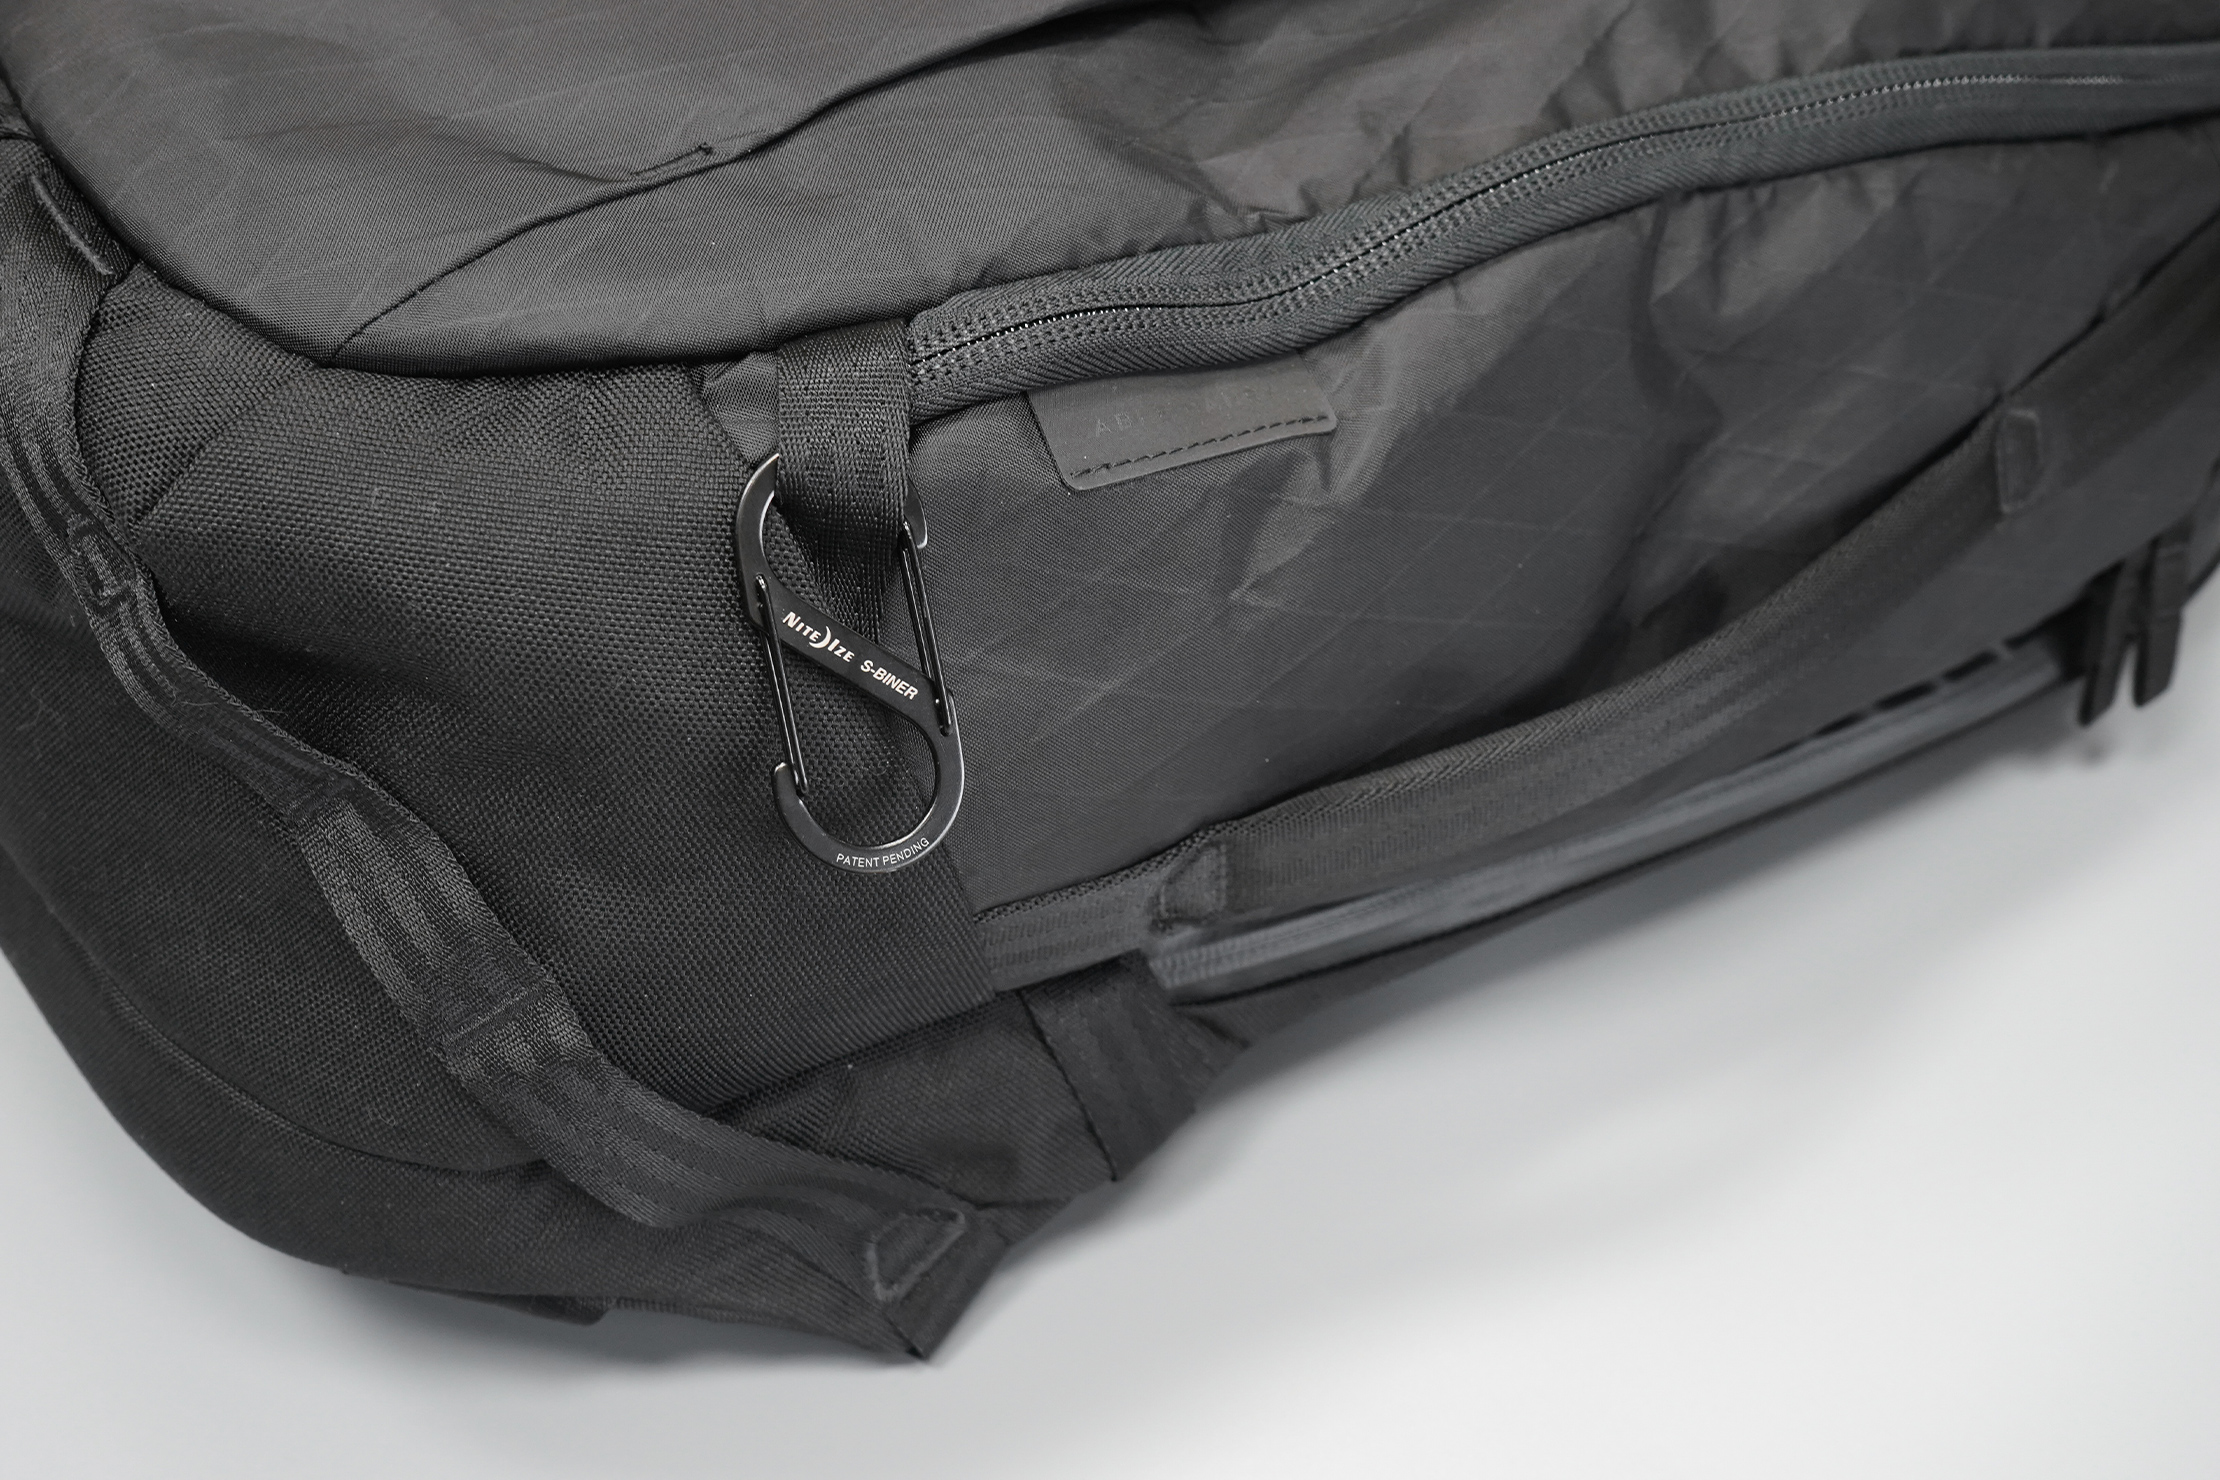 Able Carry Max Backpack | That's X-Pac and 1000D CORDURA Nylon—a durable tag team